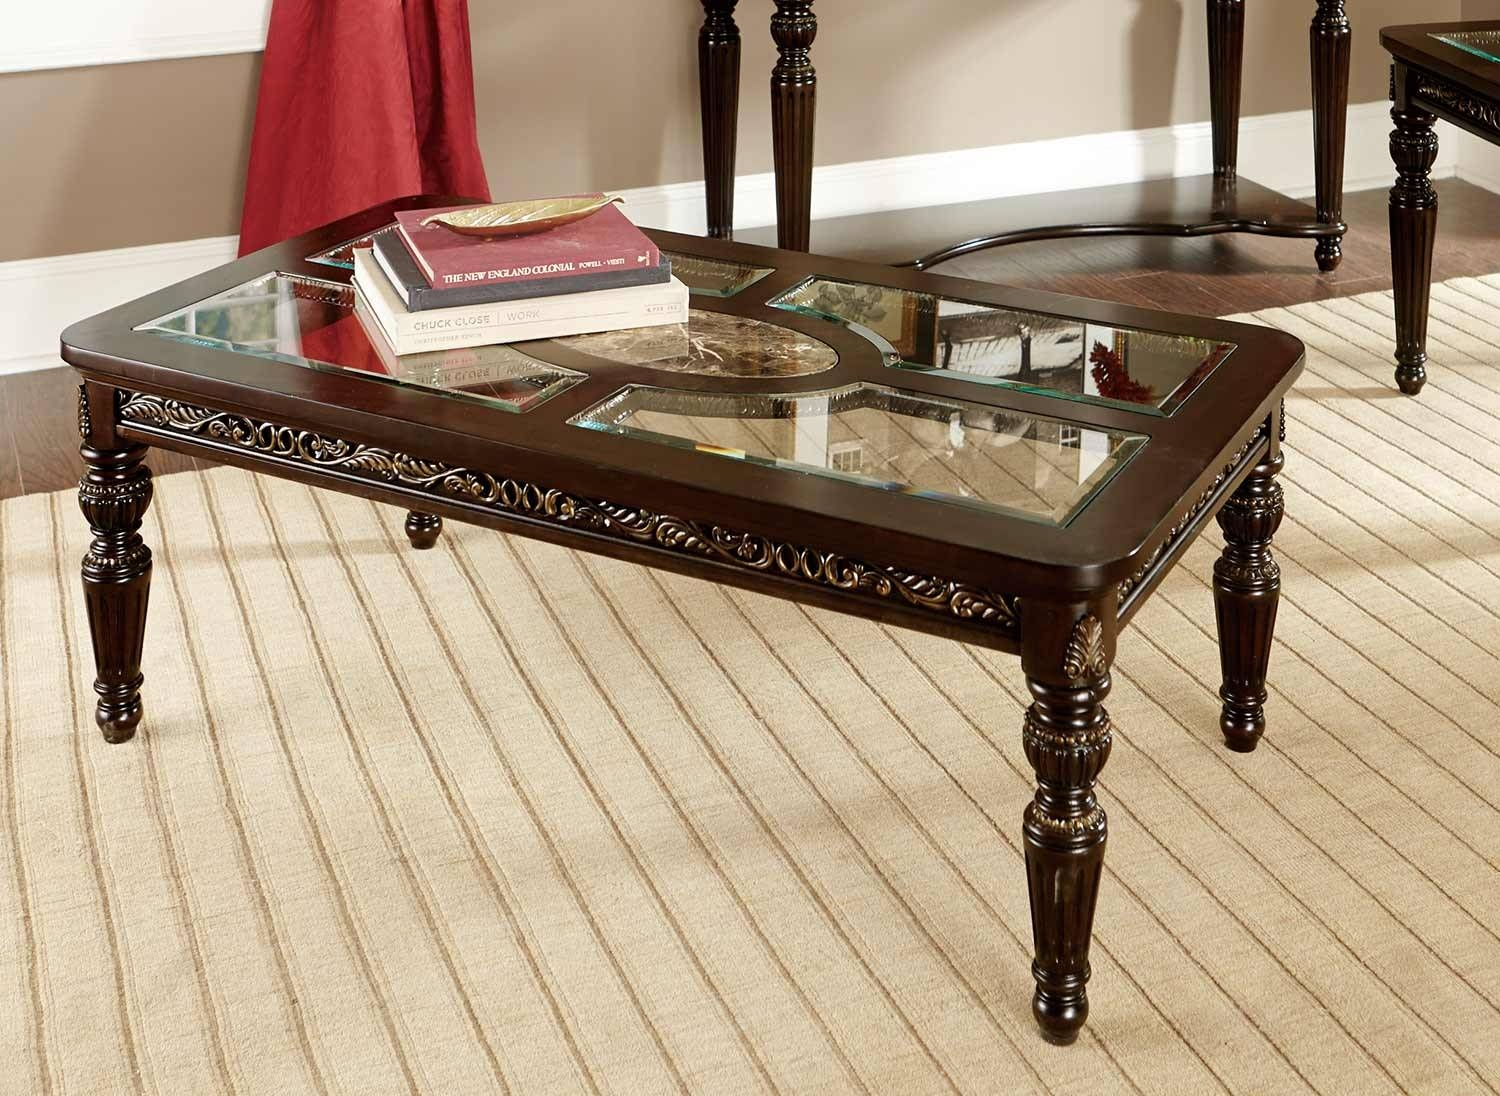 Homelegance Russian Hill Coffee Table Set - Cherry With Glass with regard to Marble And Glass Coffee Table (Image 7 of 15)